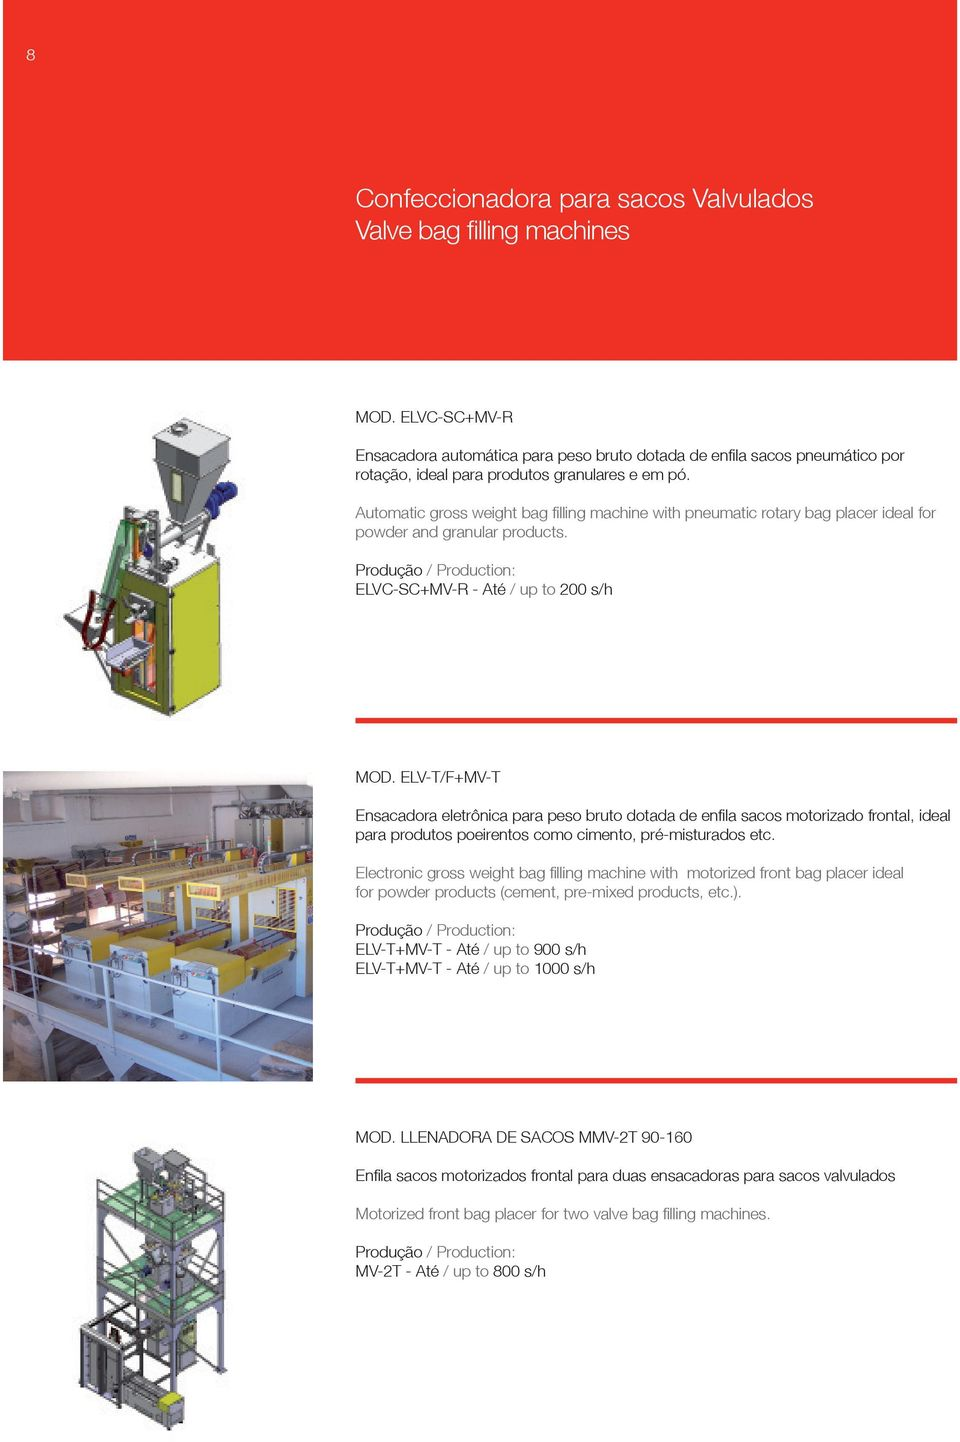 Automatic gross weight bag filling machine with pneumatic rotary bag placer ideal for powder and granular products. ELVC-SC+MV-R - Até / up to 200 s/h MOD.